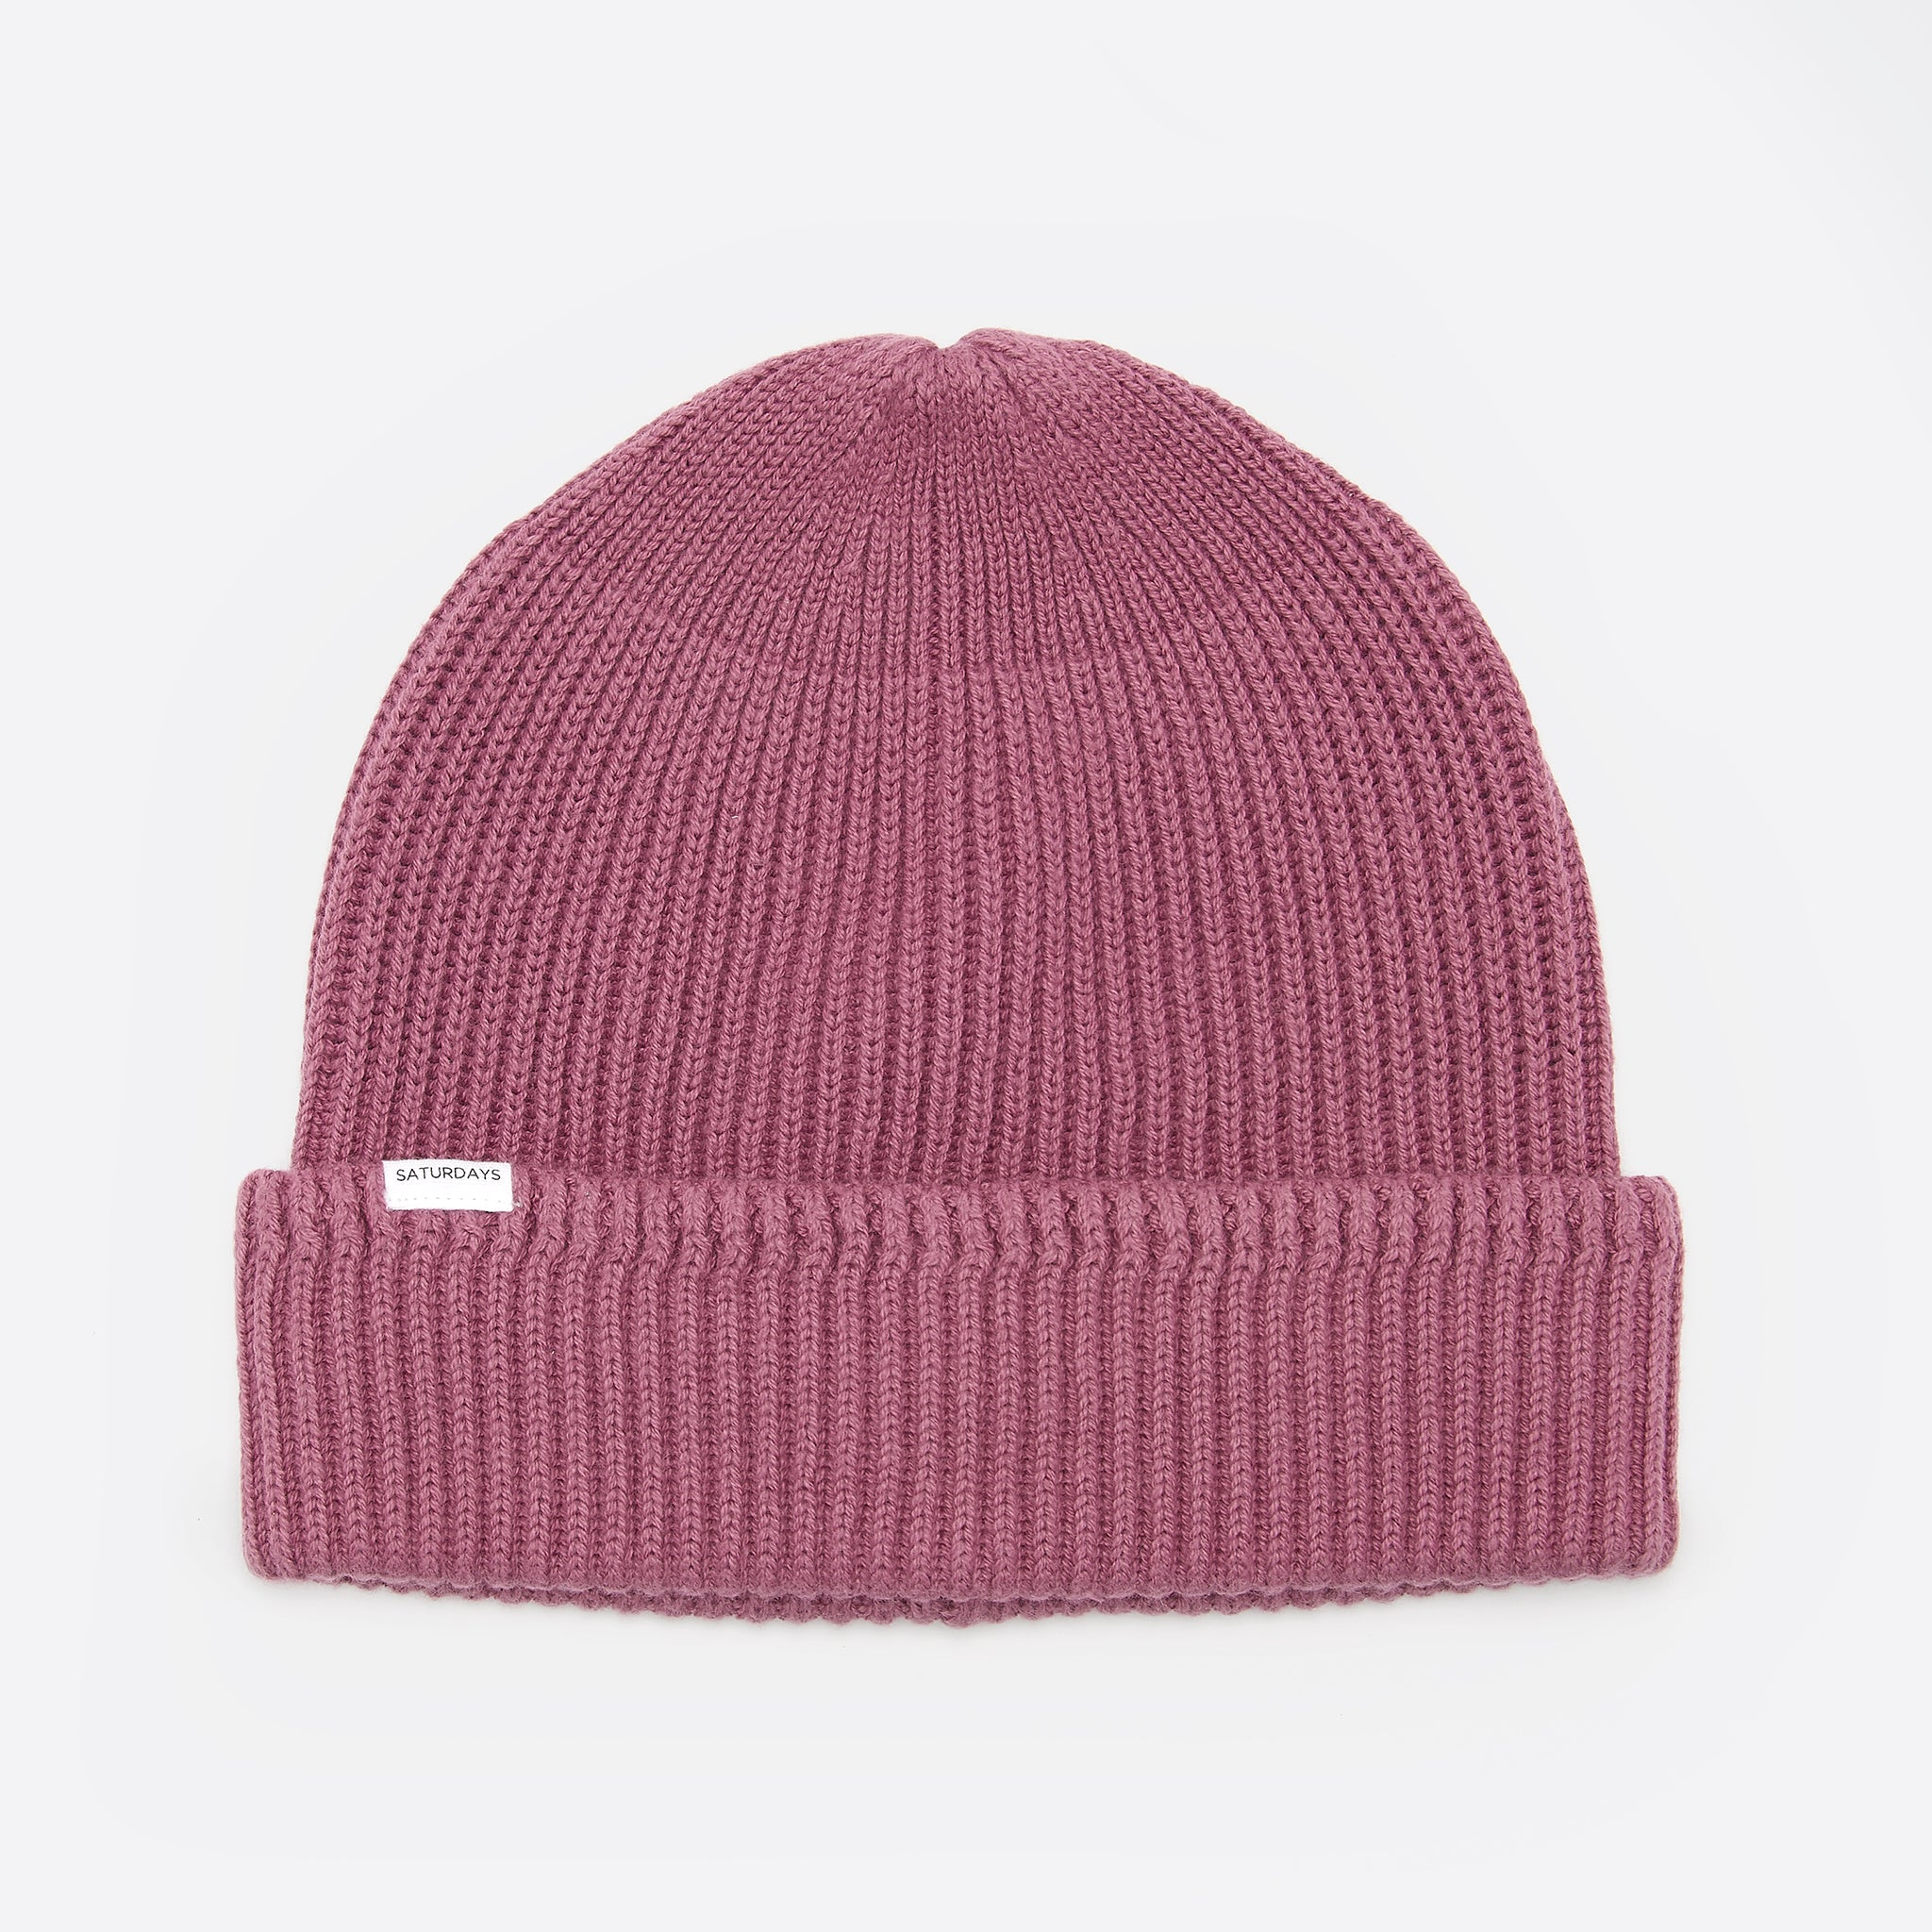 Saturdays NYC 1x1 Rib Beanie in Light Plum